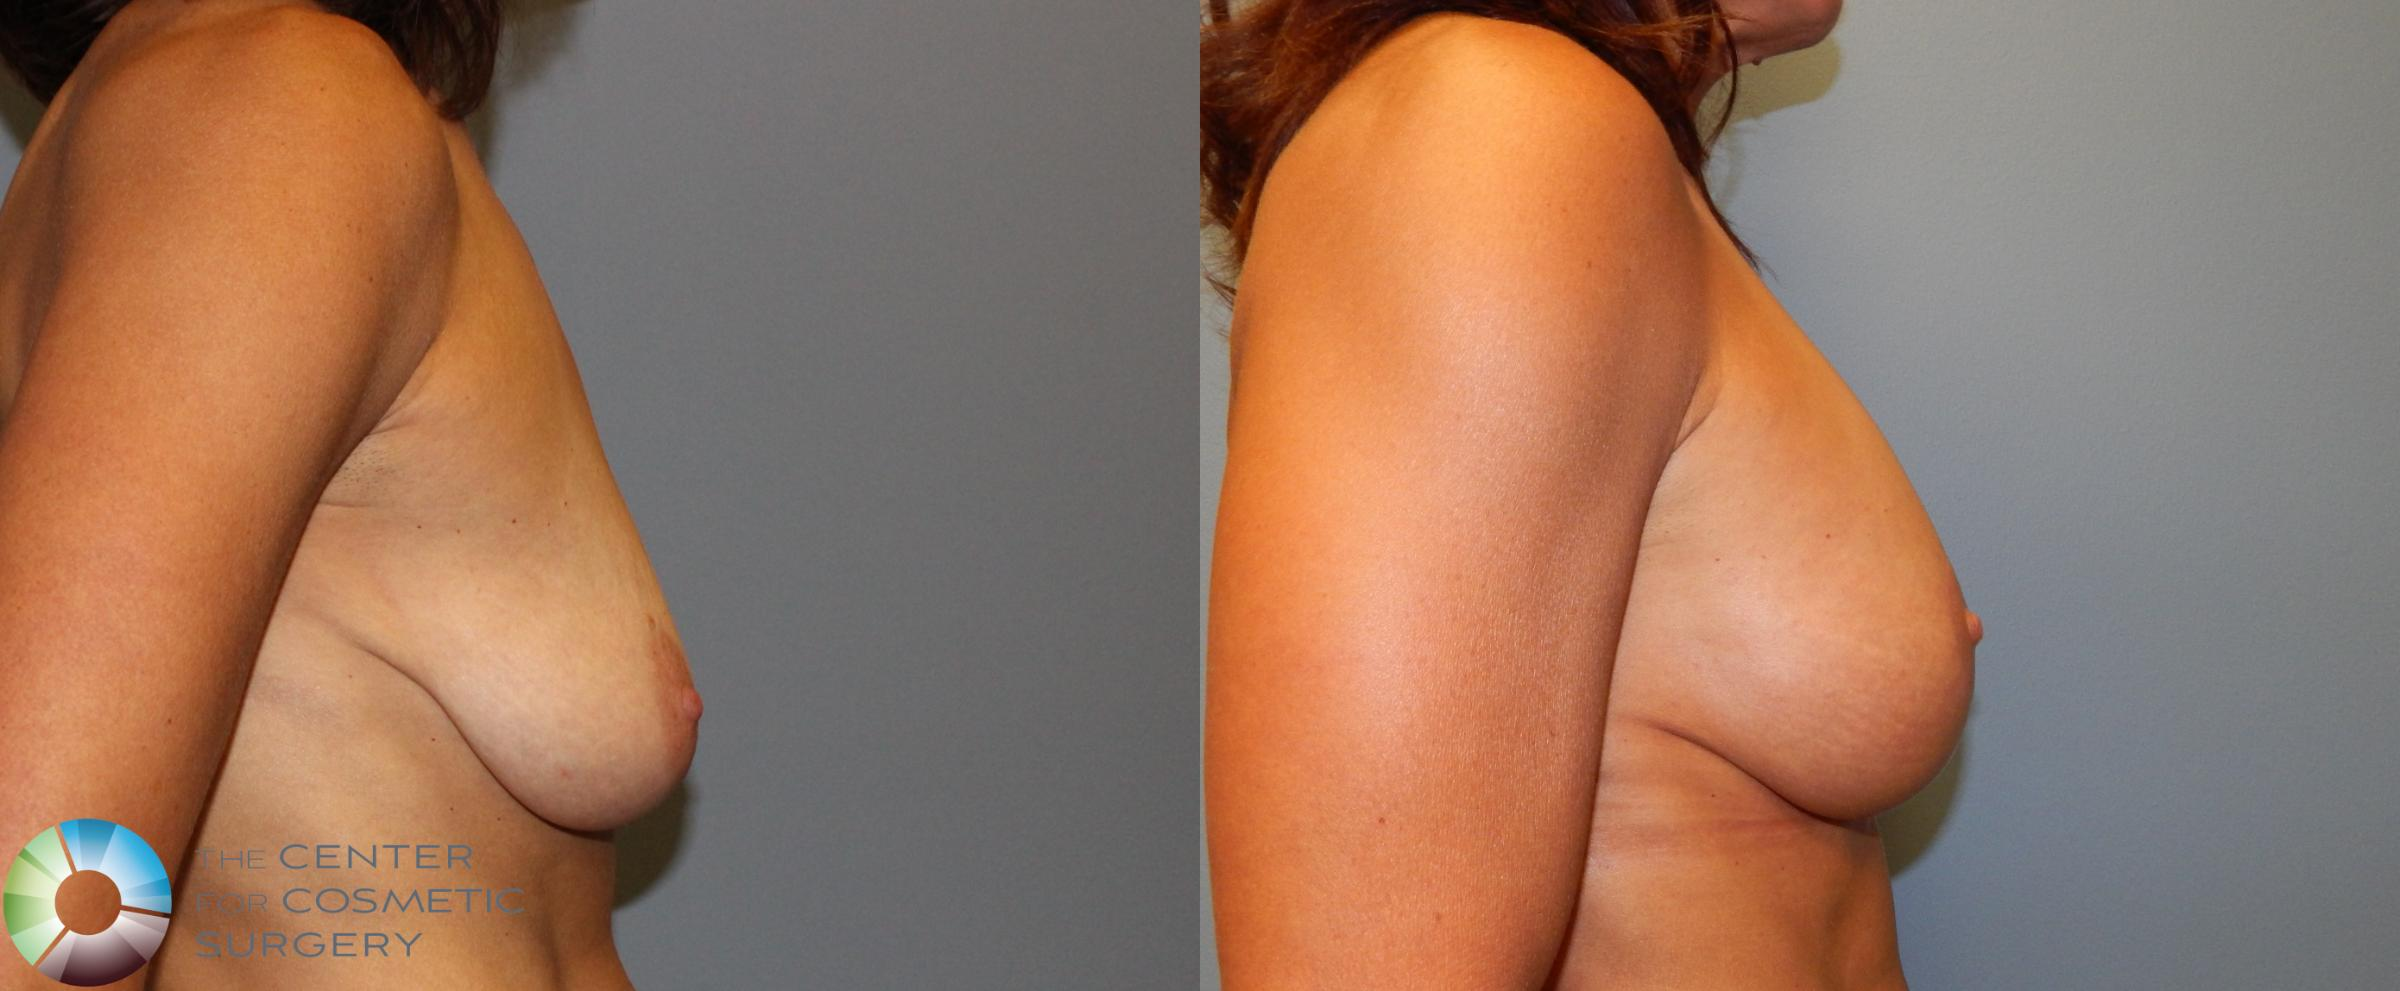 Breast Augmentation Case 892 Before & After View #3 | Golden, CO | The Center for Cosmetic Surgery